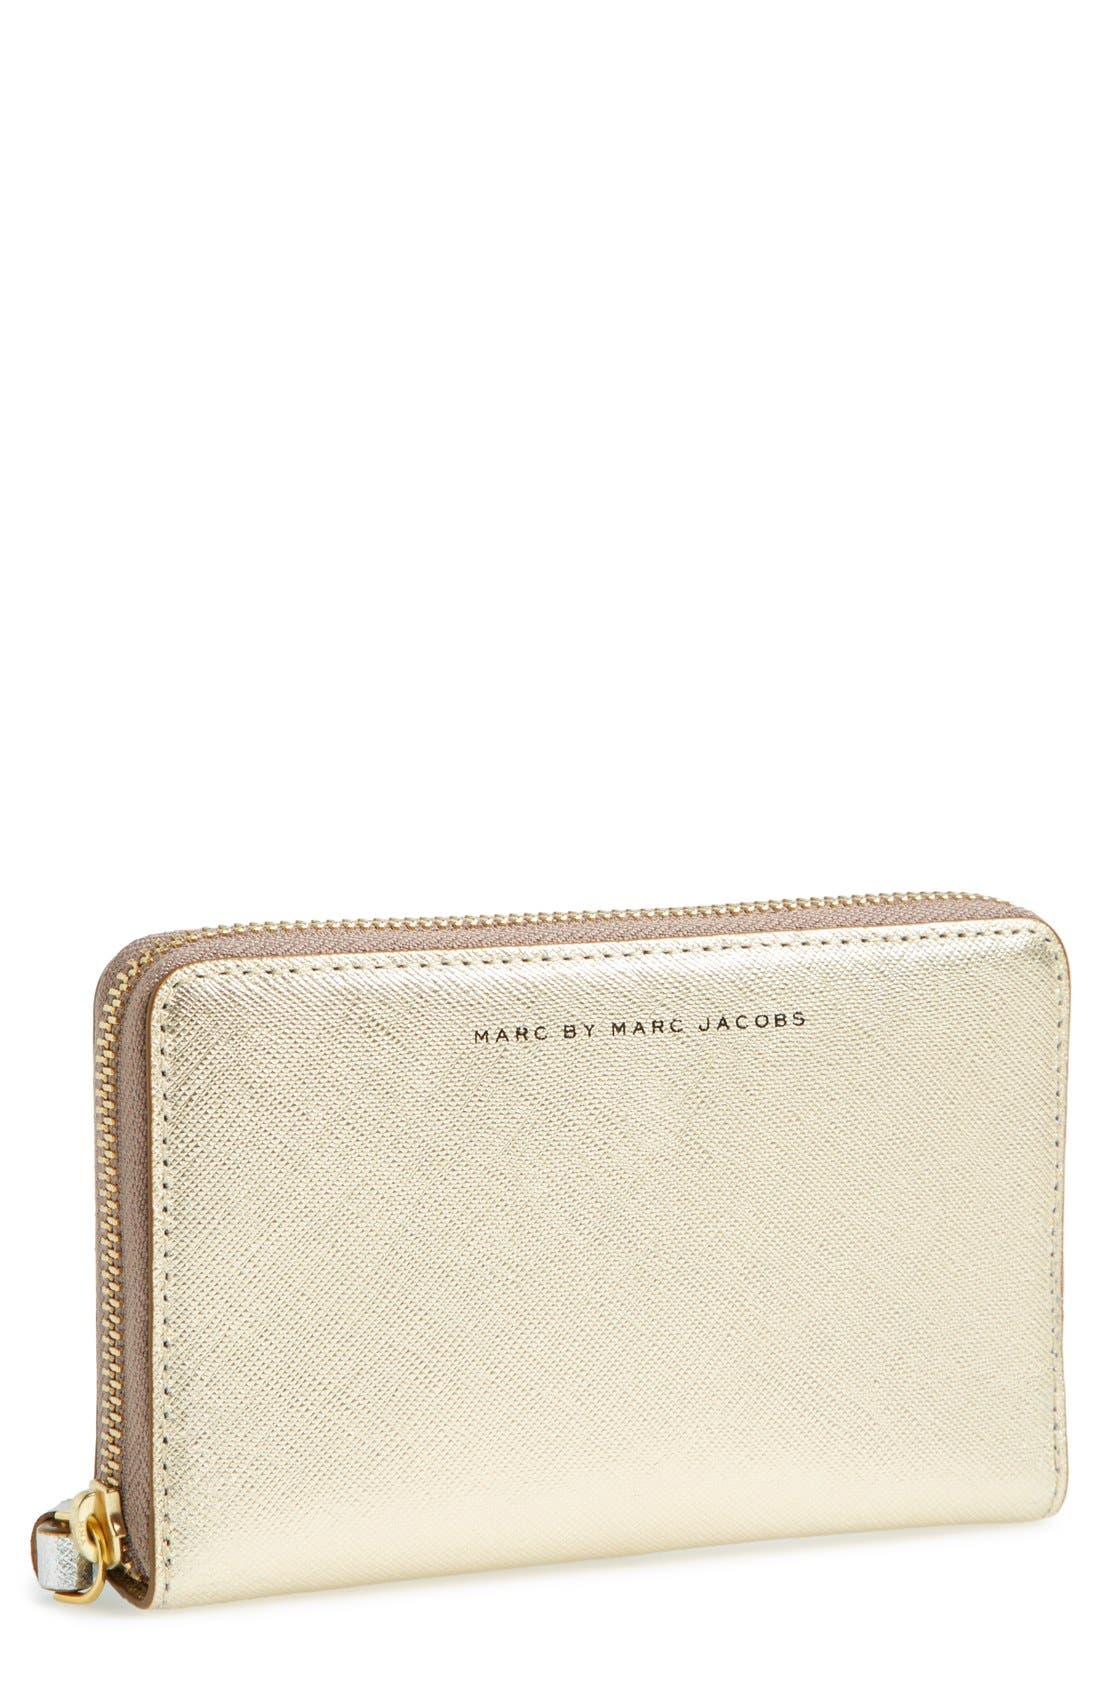 Main Image - MARC BY MARC JACOBS 'Sophisticato Mildred' Leather Phone Wallet